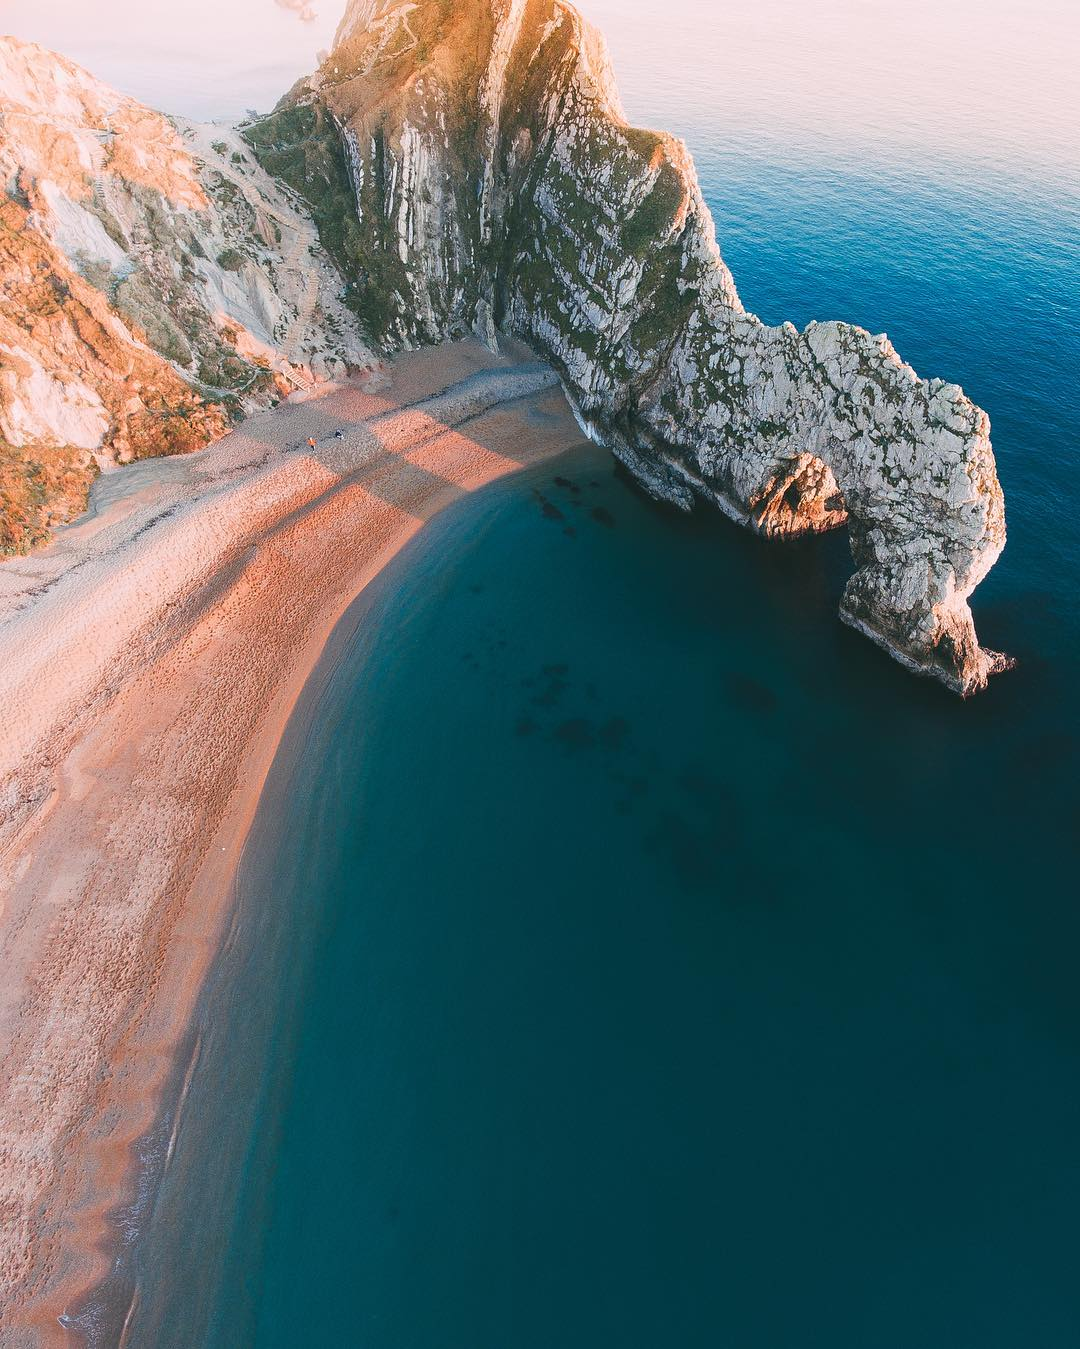 Bestival news: This is Durdle Door and it's 12 minutes from our home in Dorset. Bestival is the…